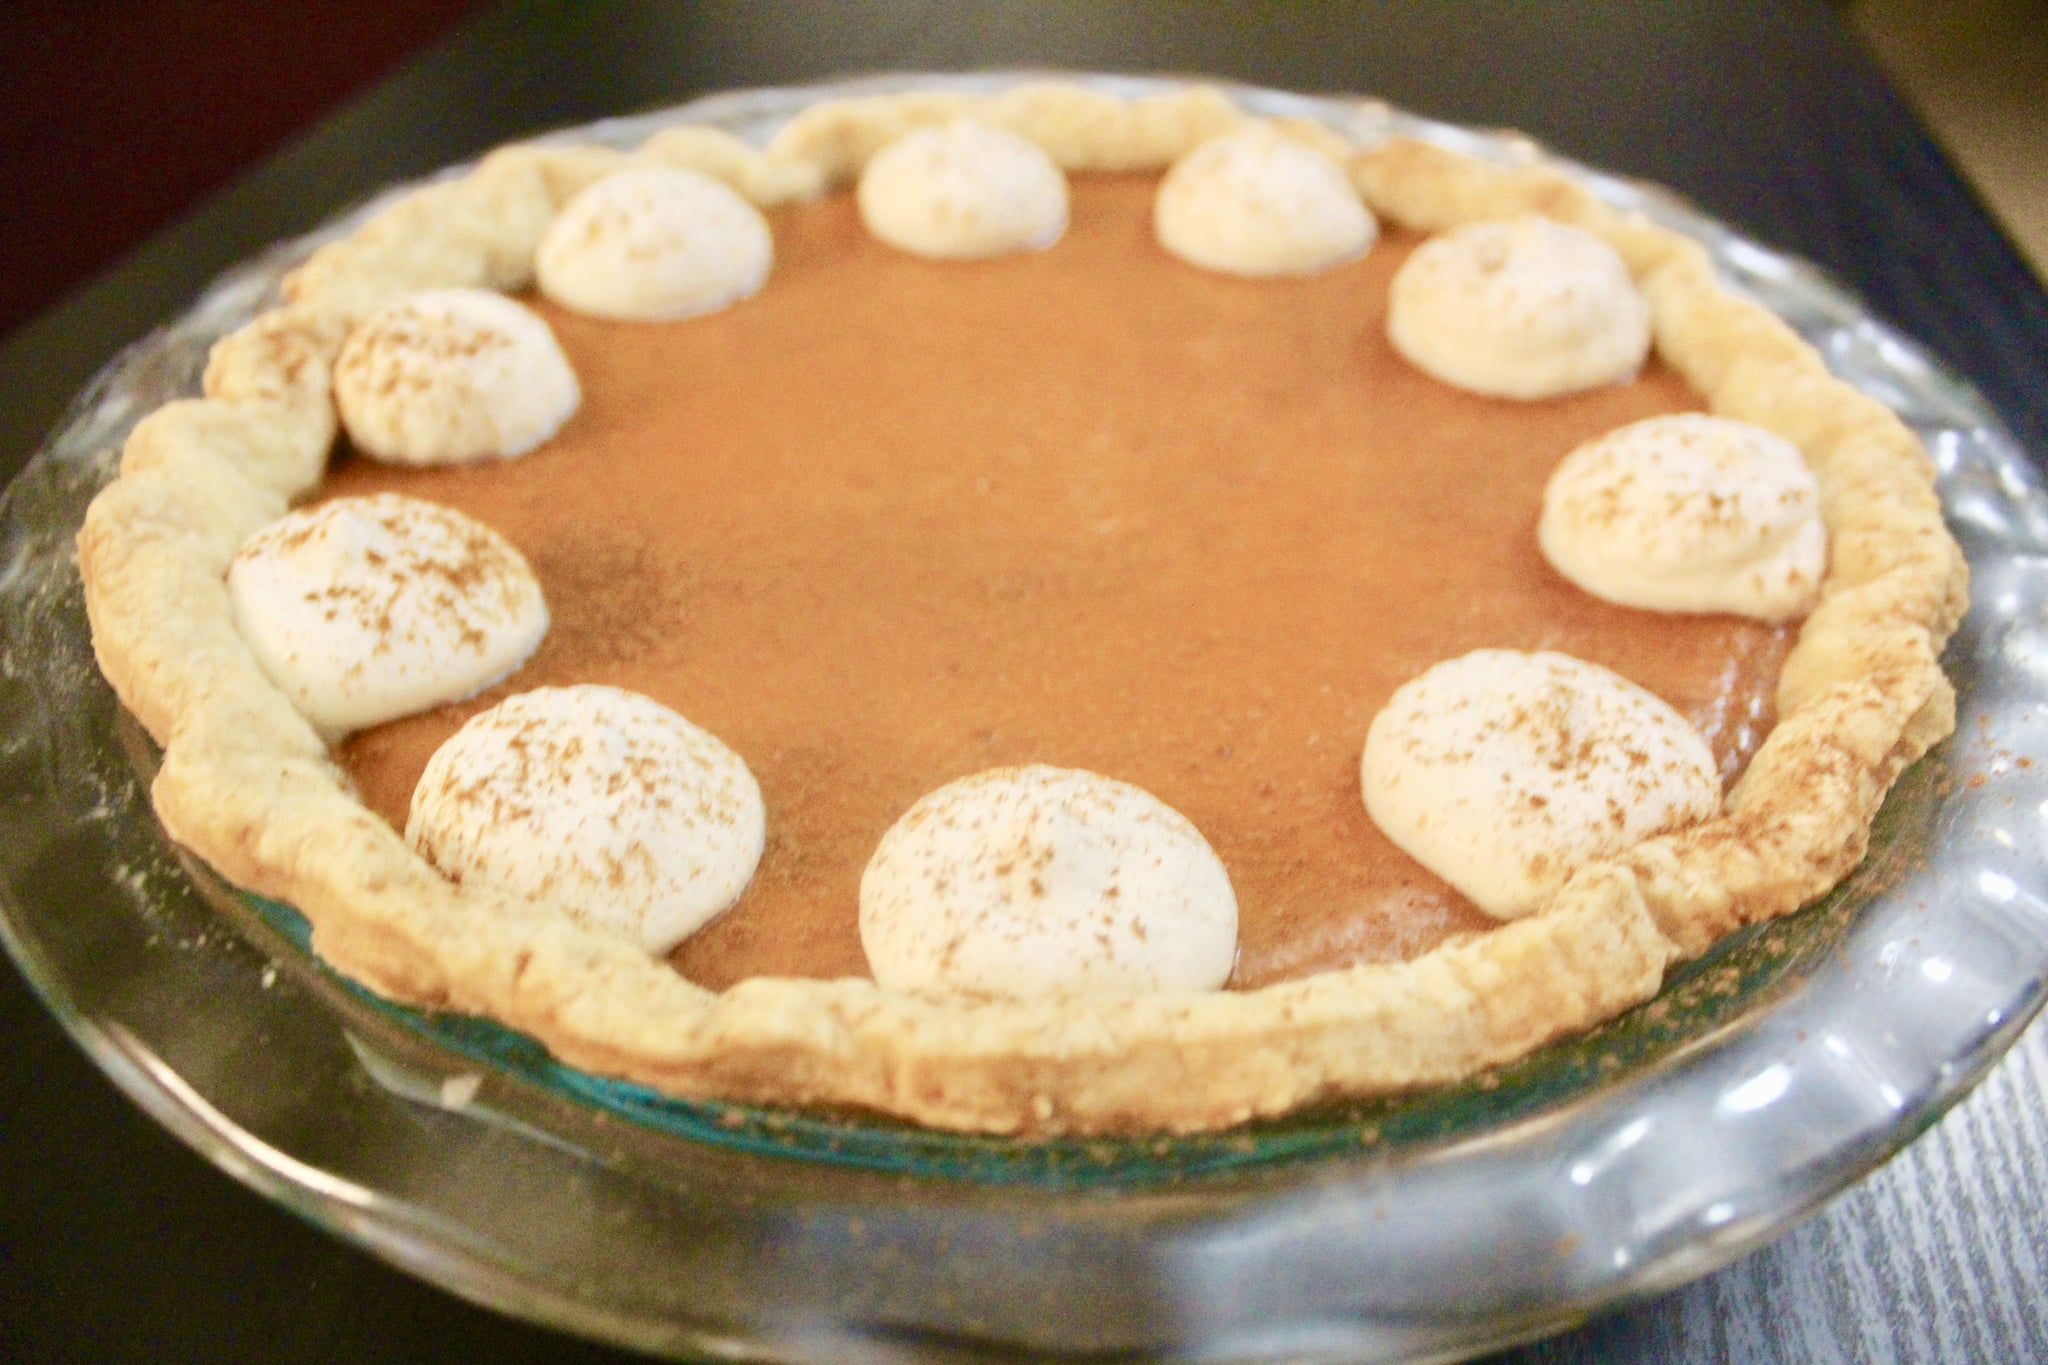 Molly Yeh's Pumpkin Pie Recipe Ups the Ante on the Traditional Dessert